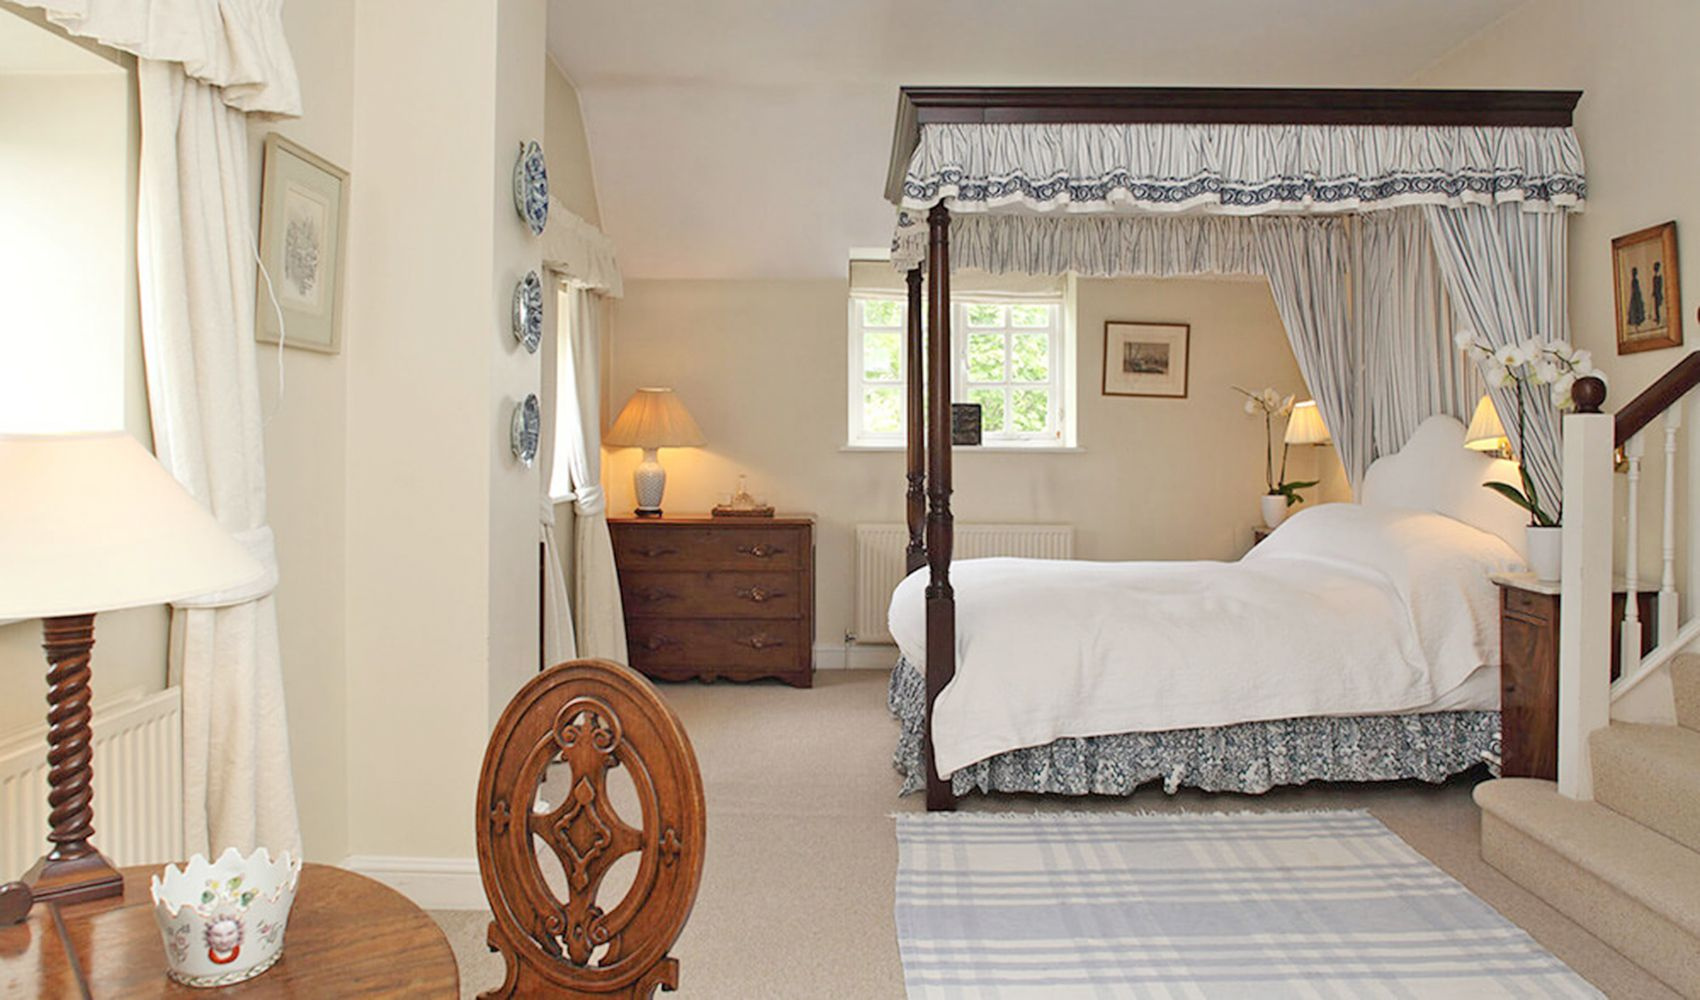 First floor: Large master bedroom with a large en suite bathroom